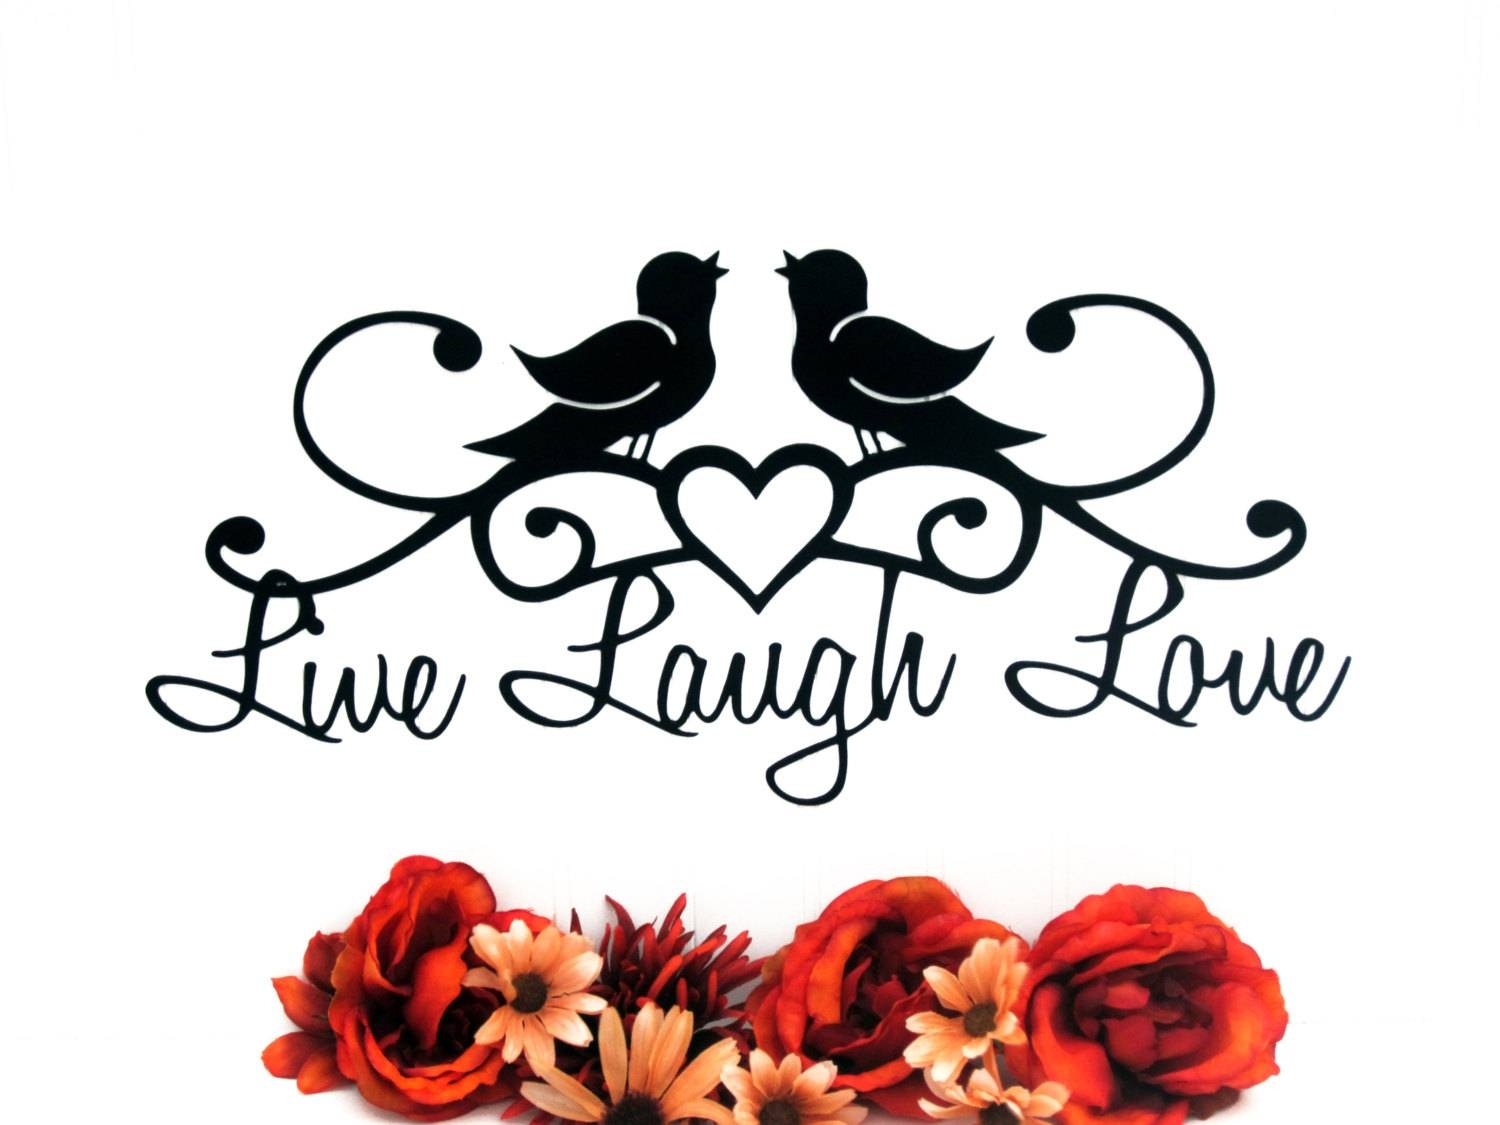 Birds Live Laugh Love Metal Wall Art Patio Decor With Regard To Most Recent Live Laugh Love Wall Art Metal (View 11 of 25)